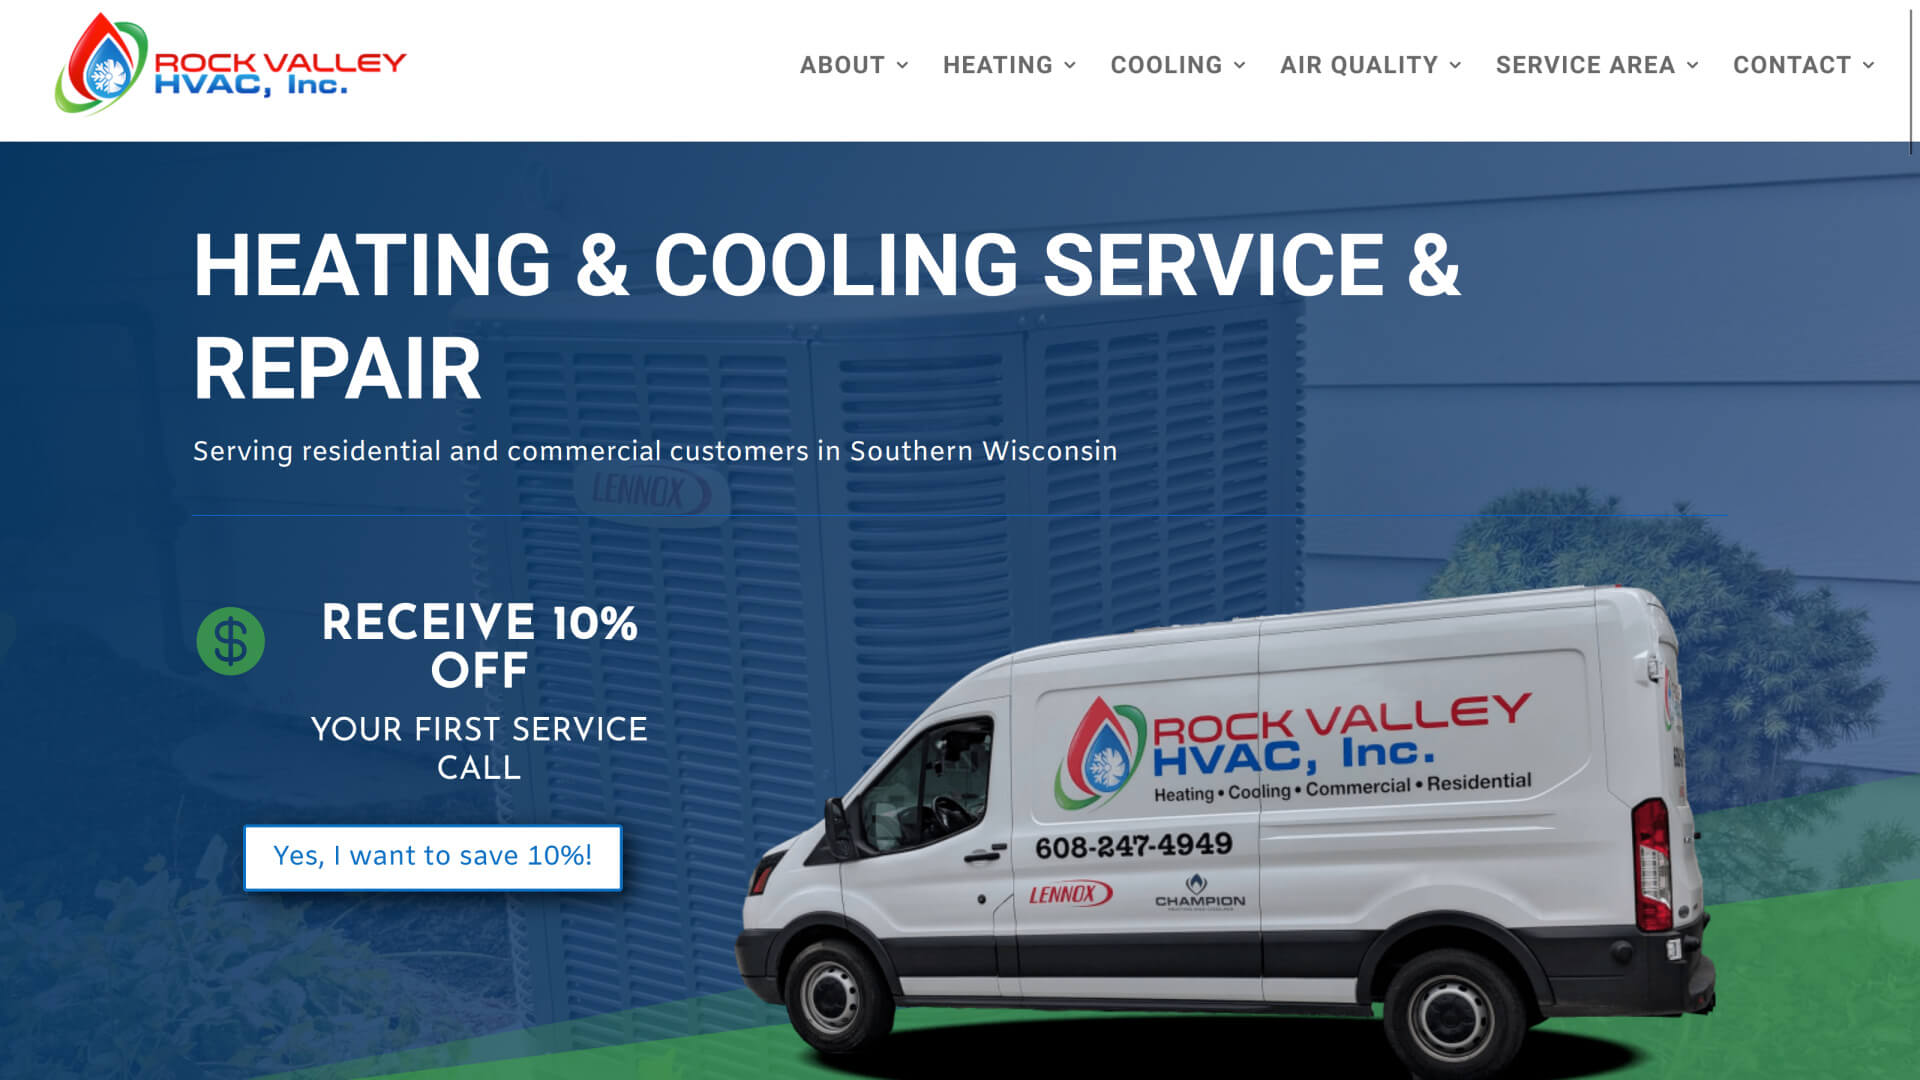 Screenshot of Rock Valley HVAC homepage from March 27, 2020